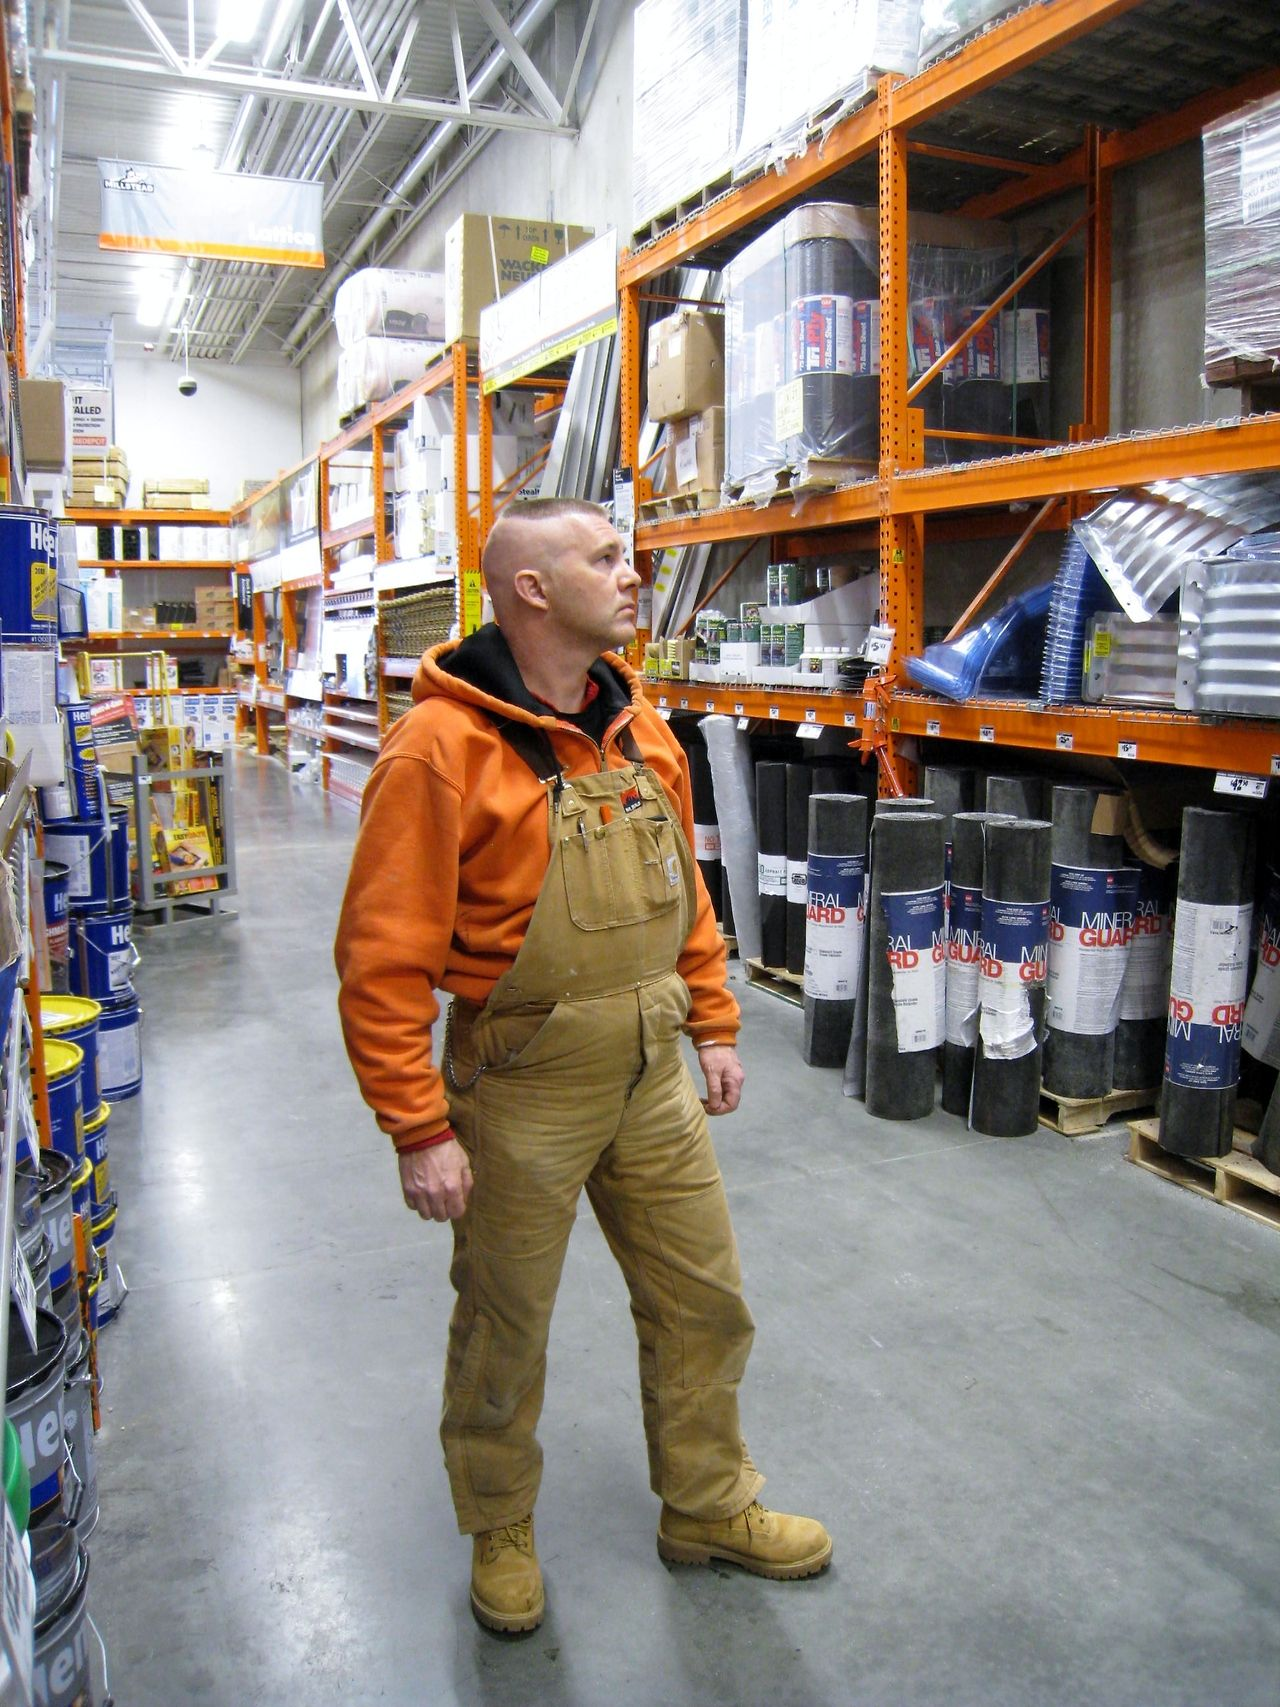 9b7a61c4e8 Corduroy overalls worn with work boots at Home Depot